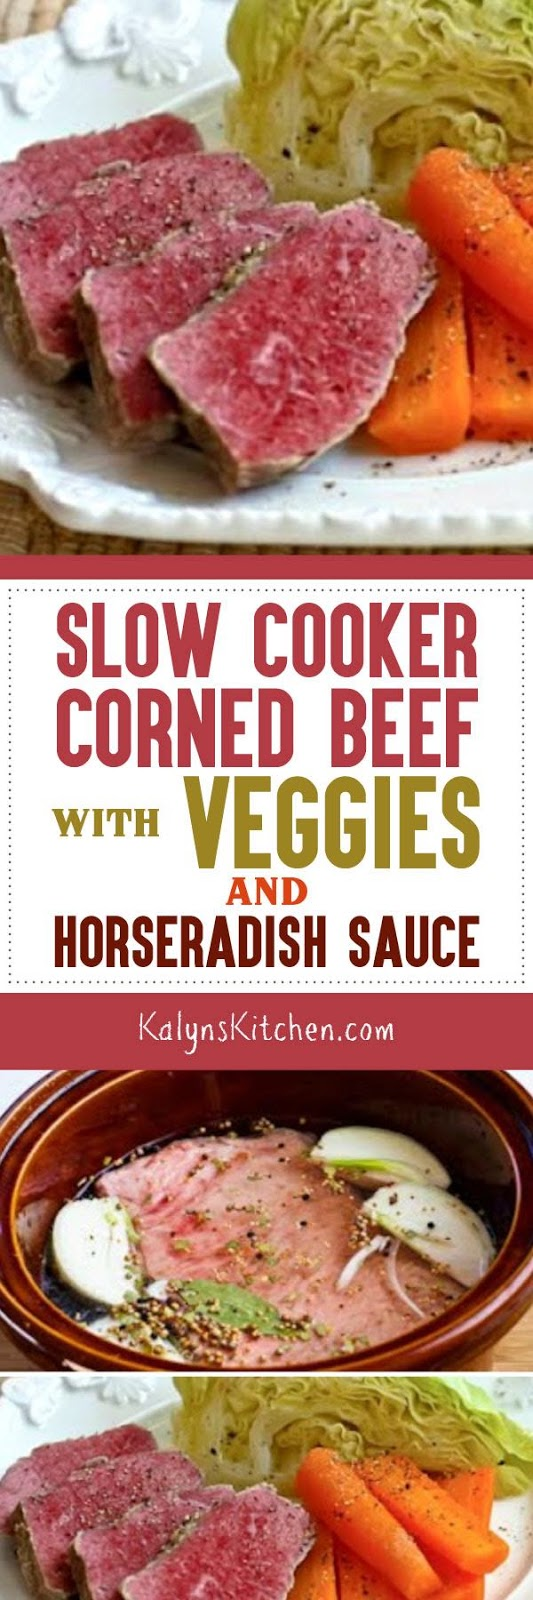 how to cook corned silverside slow cooker